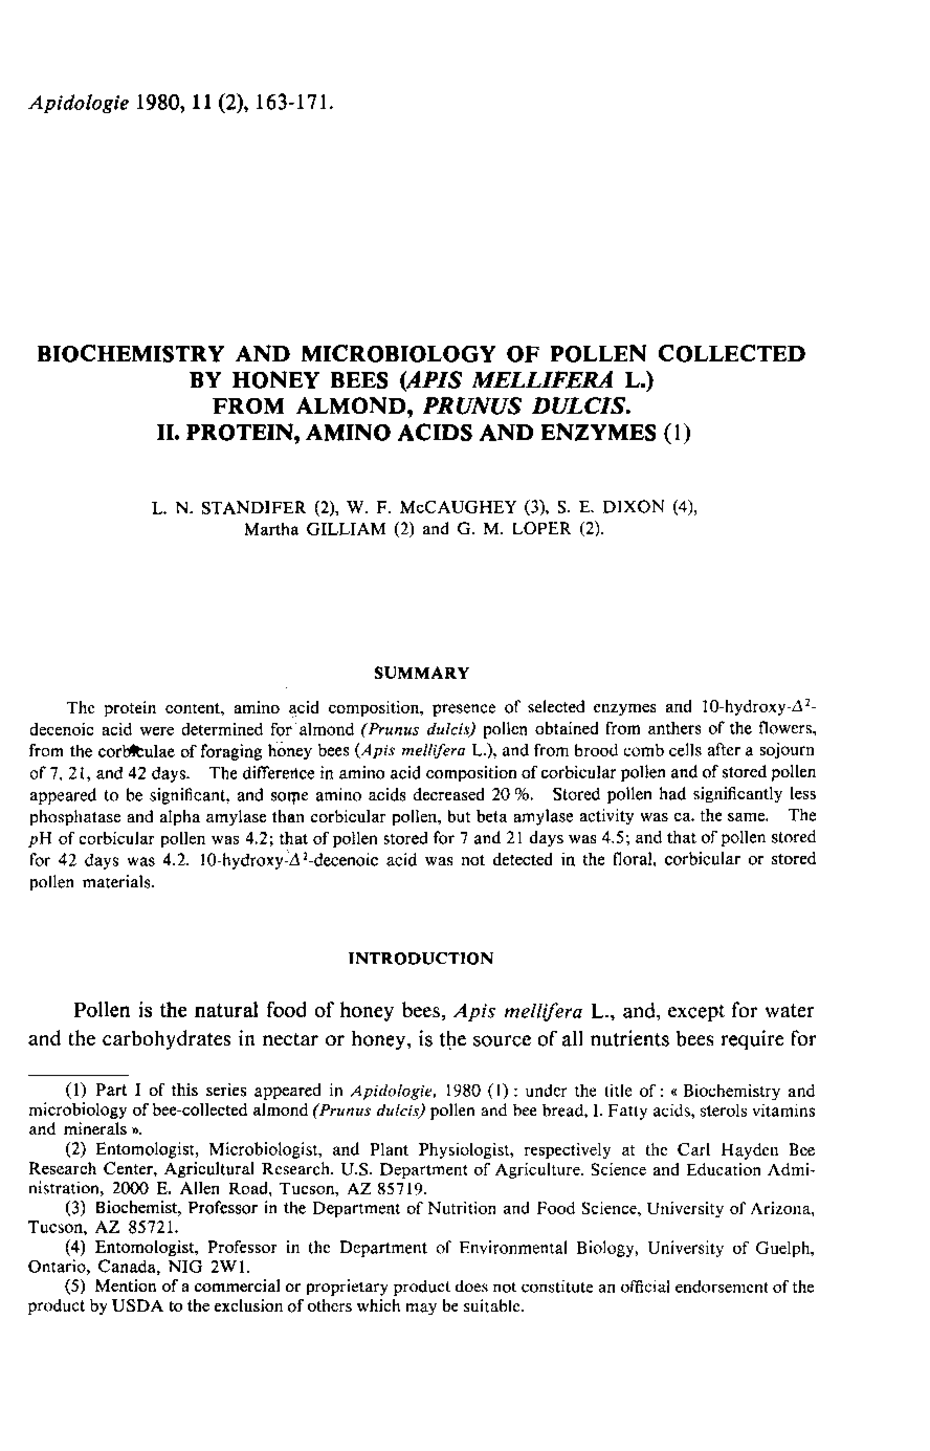 biochemistry and microbiology of pollen collected by honey bees first page of the article